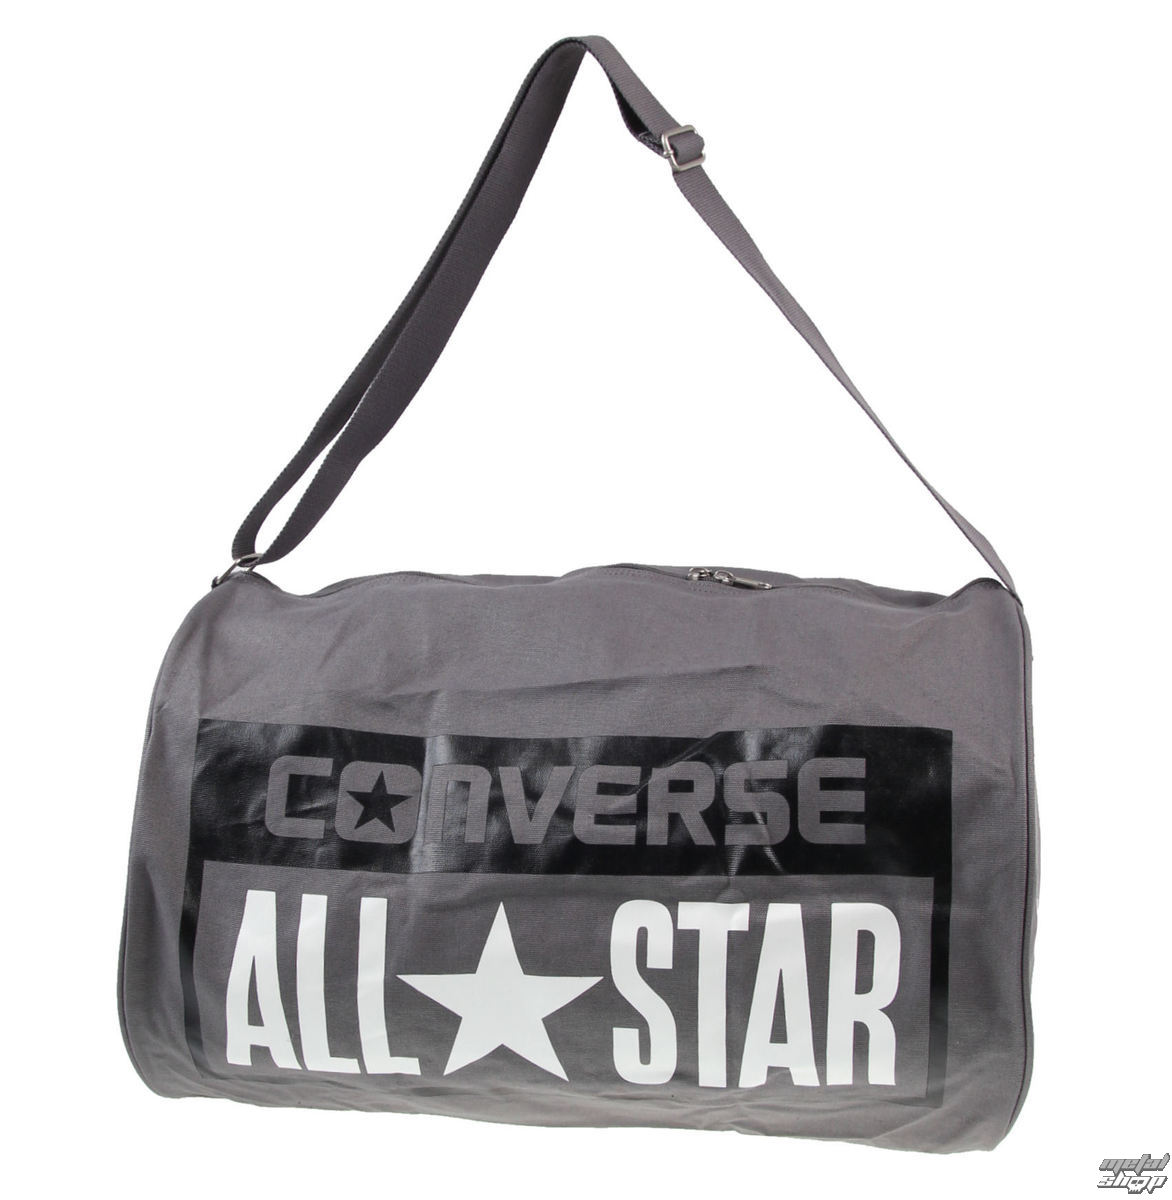 bag CONVERSE - Legacy Barrel - GREY - 10422C-010 - metal-shop.eu 973a73c2e0